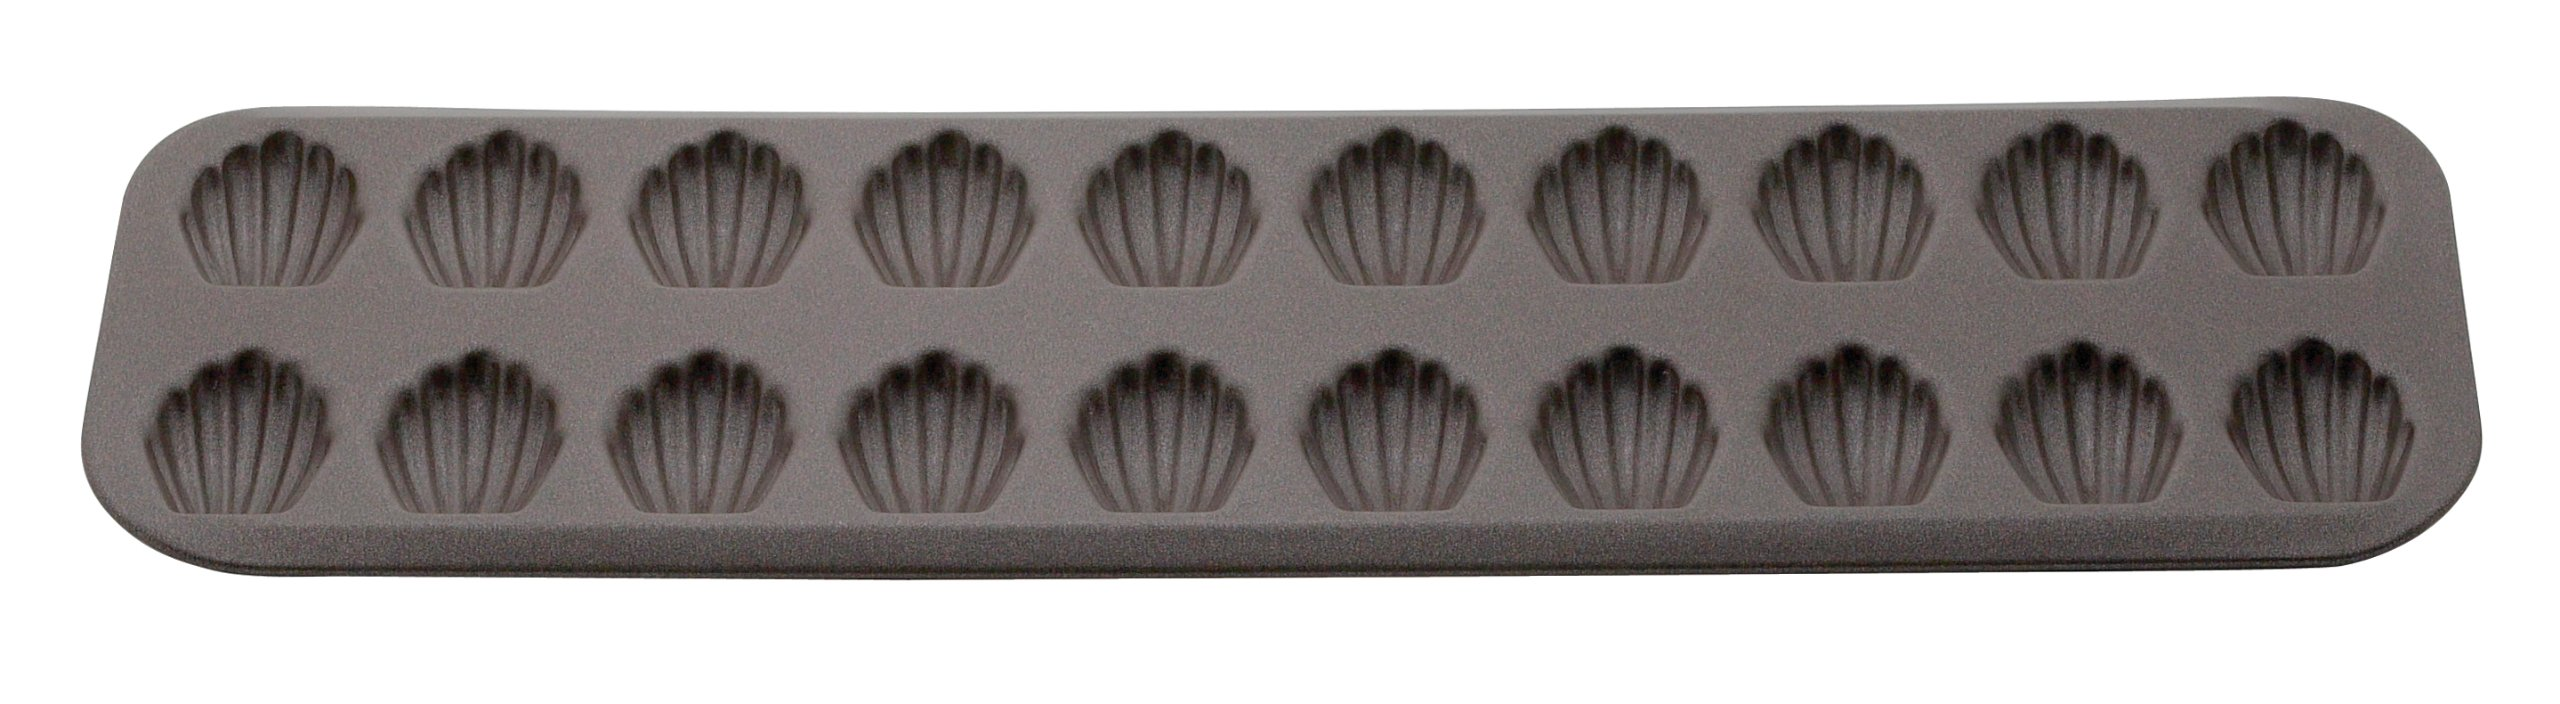 Gobel Mini Non-Stick Madeleine Pan, 15.5 by 5 Inch, Made in France by Gobel